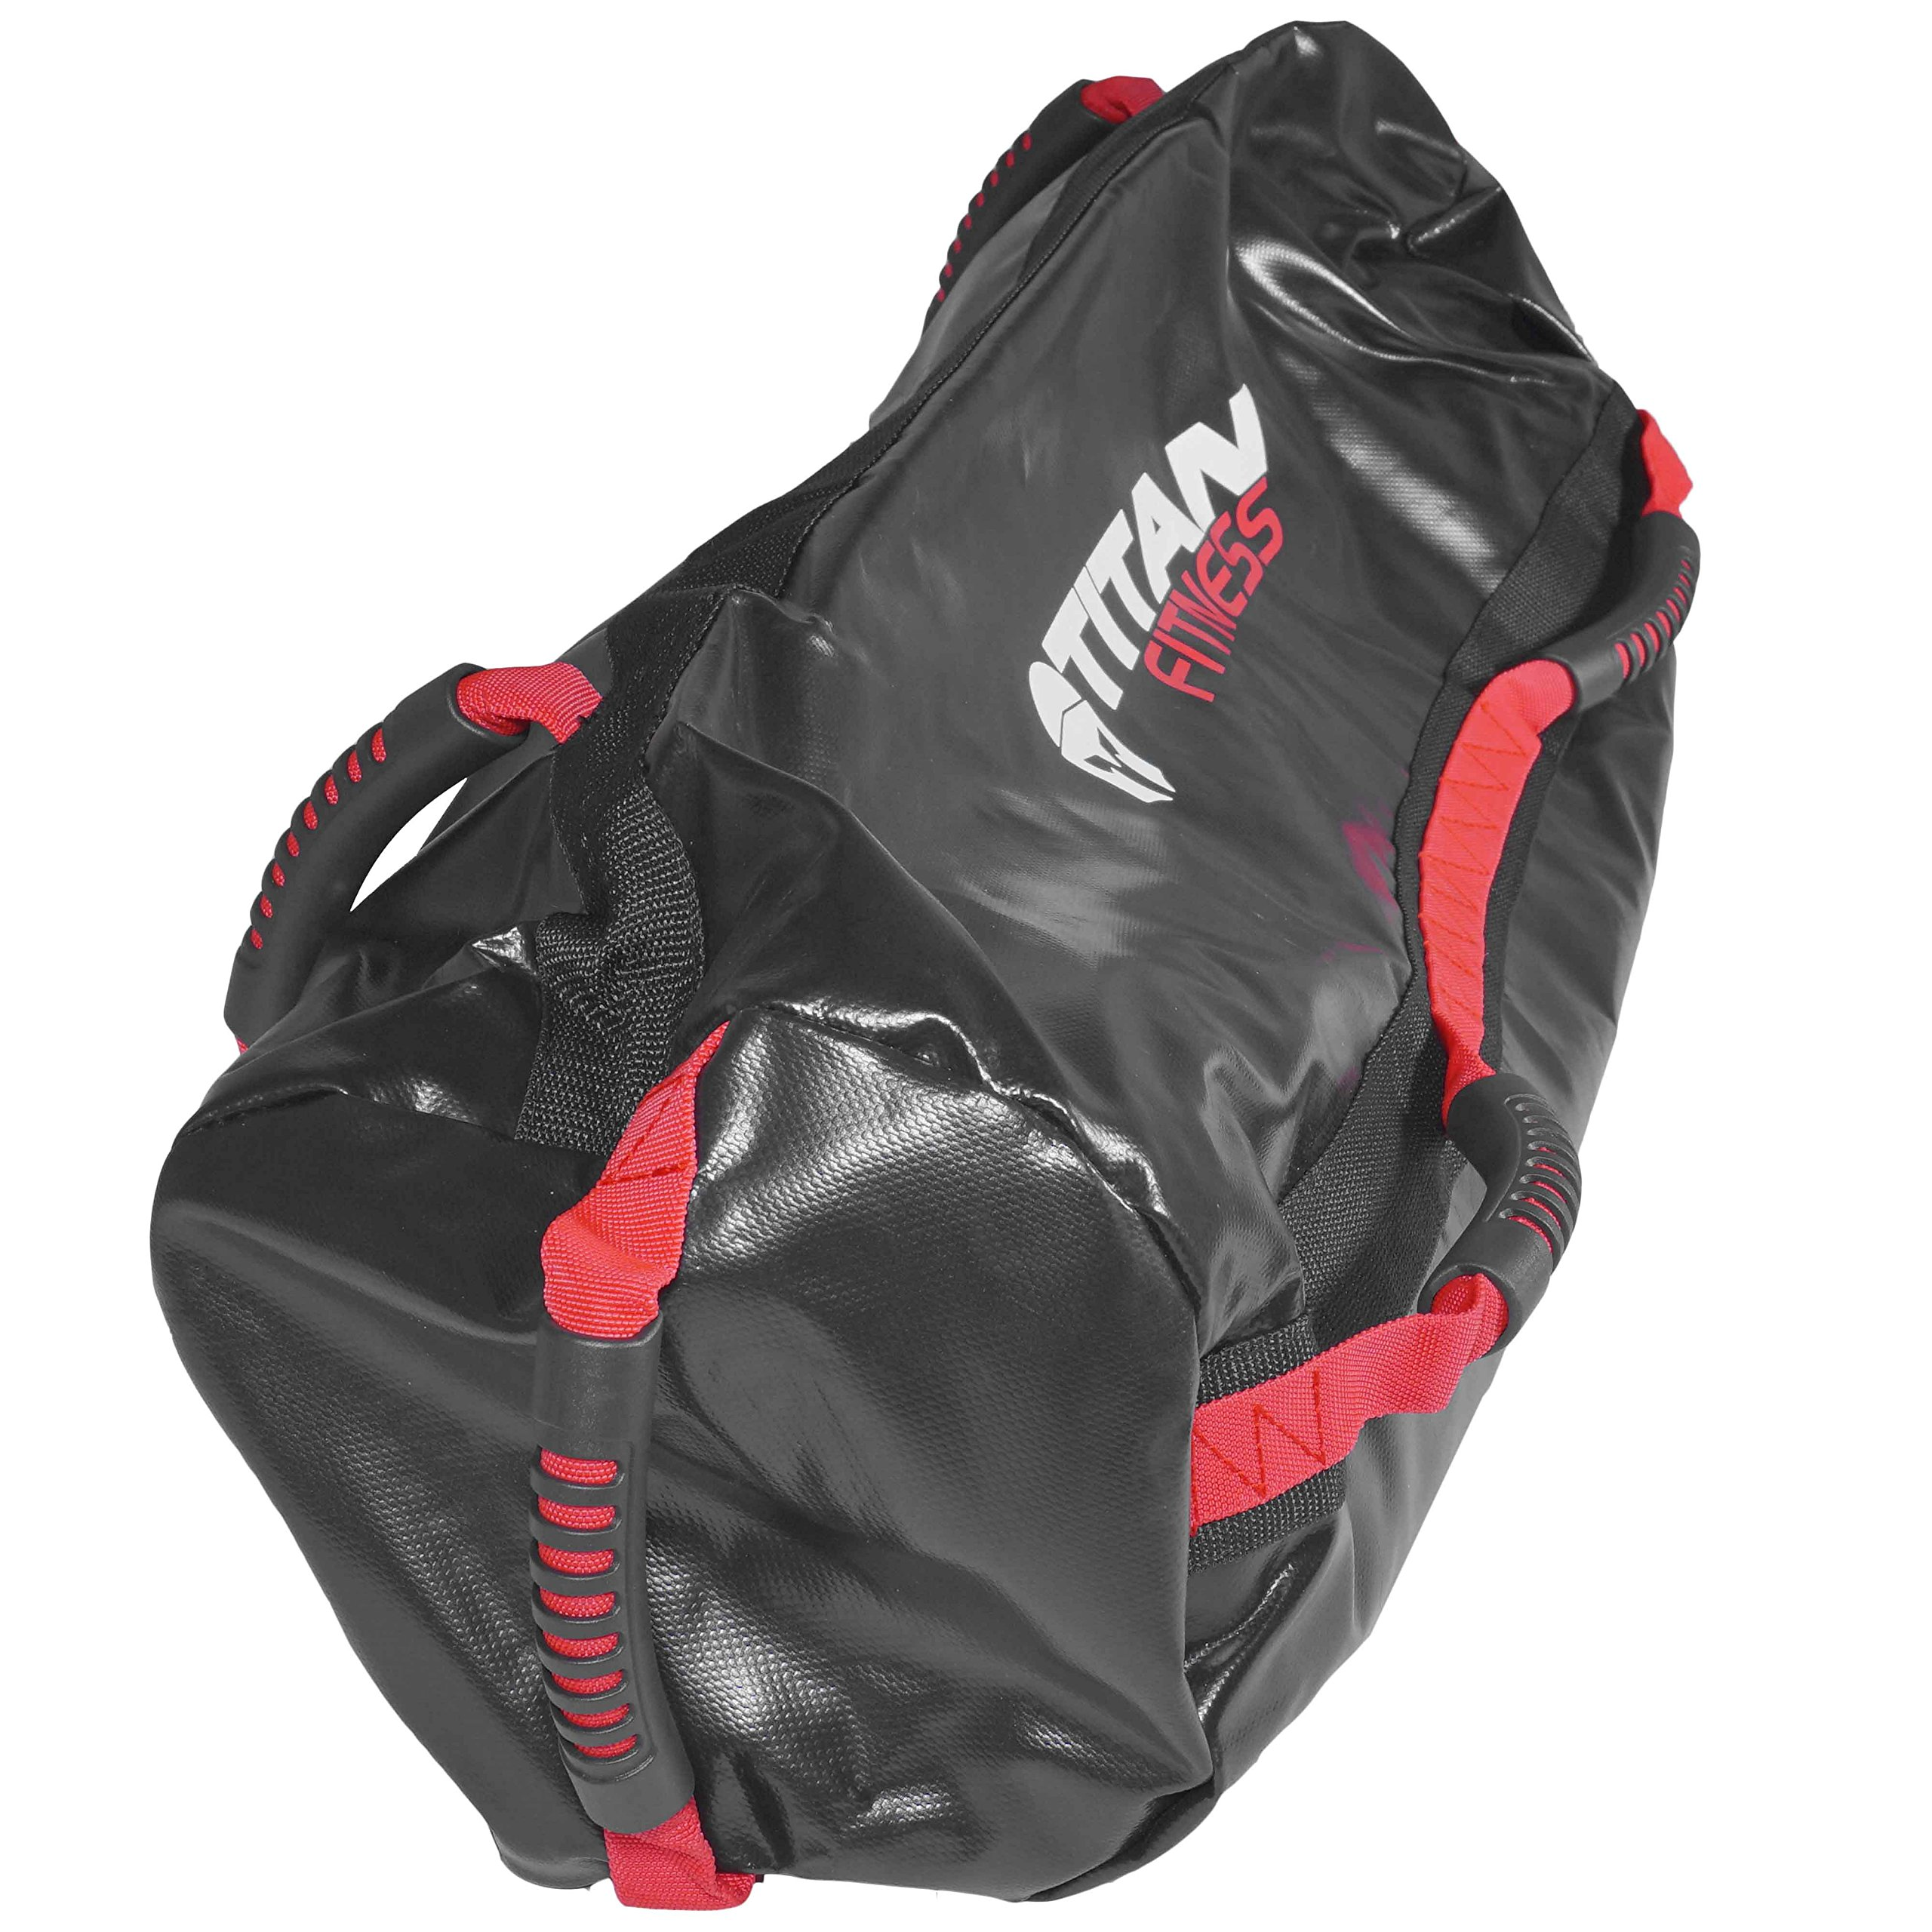 Titan Fitness 80 lb Heavy Duty Workout Weight Sandbag Exercise Training Bag by Titan Fitness (Image #3)